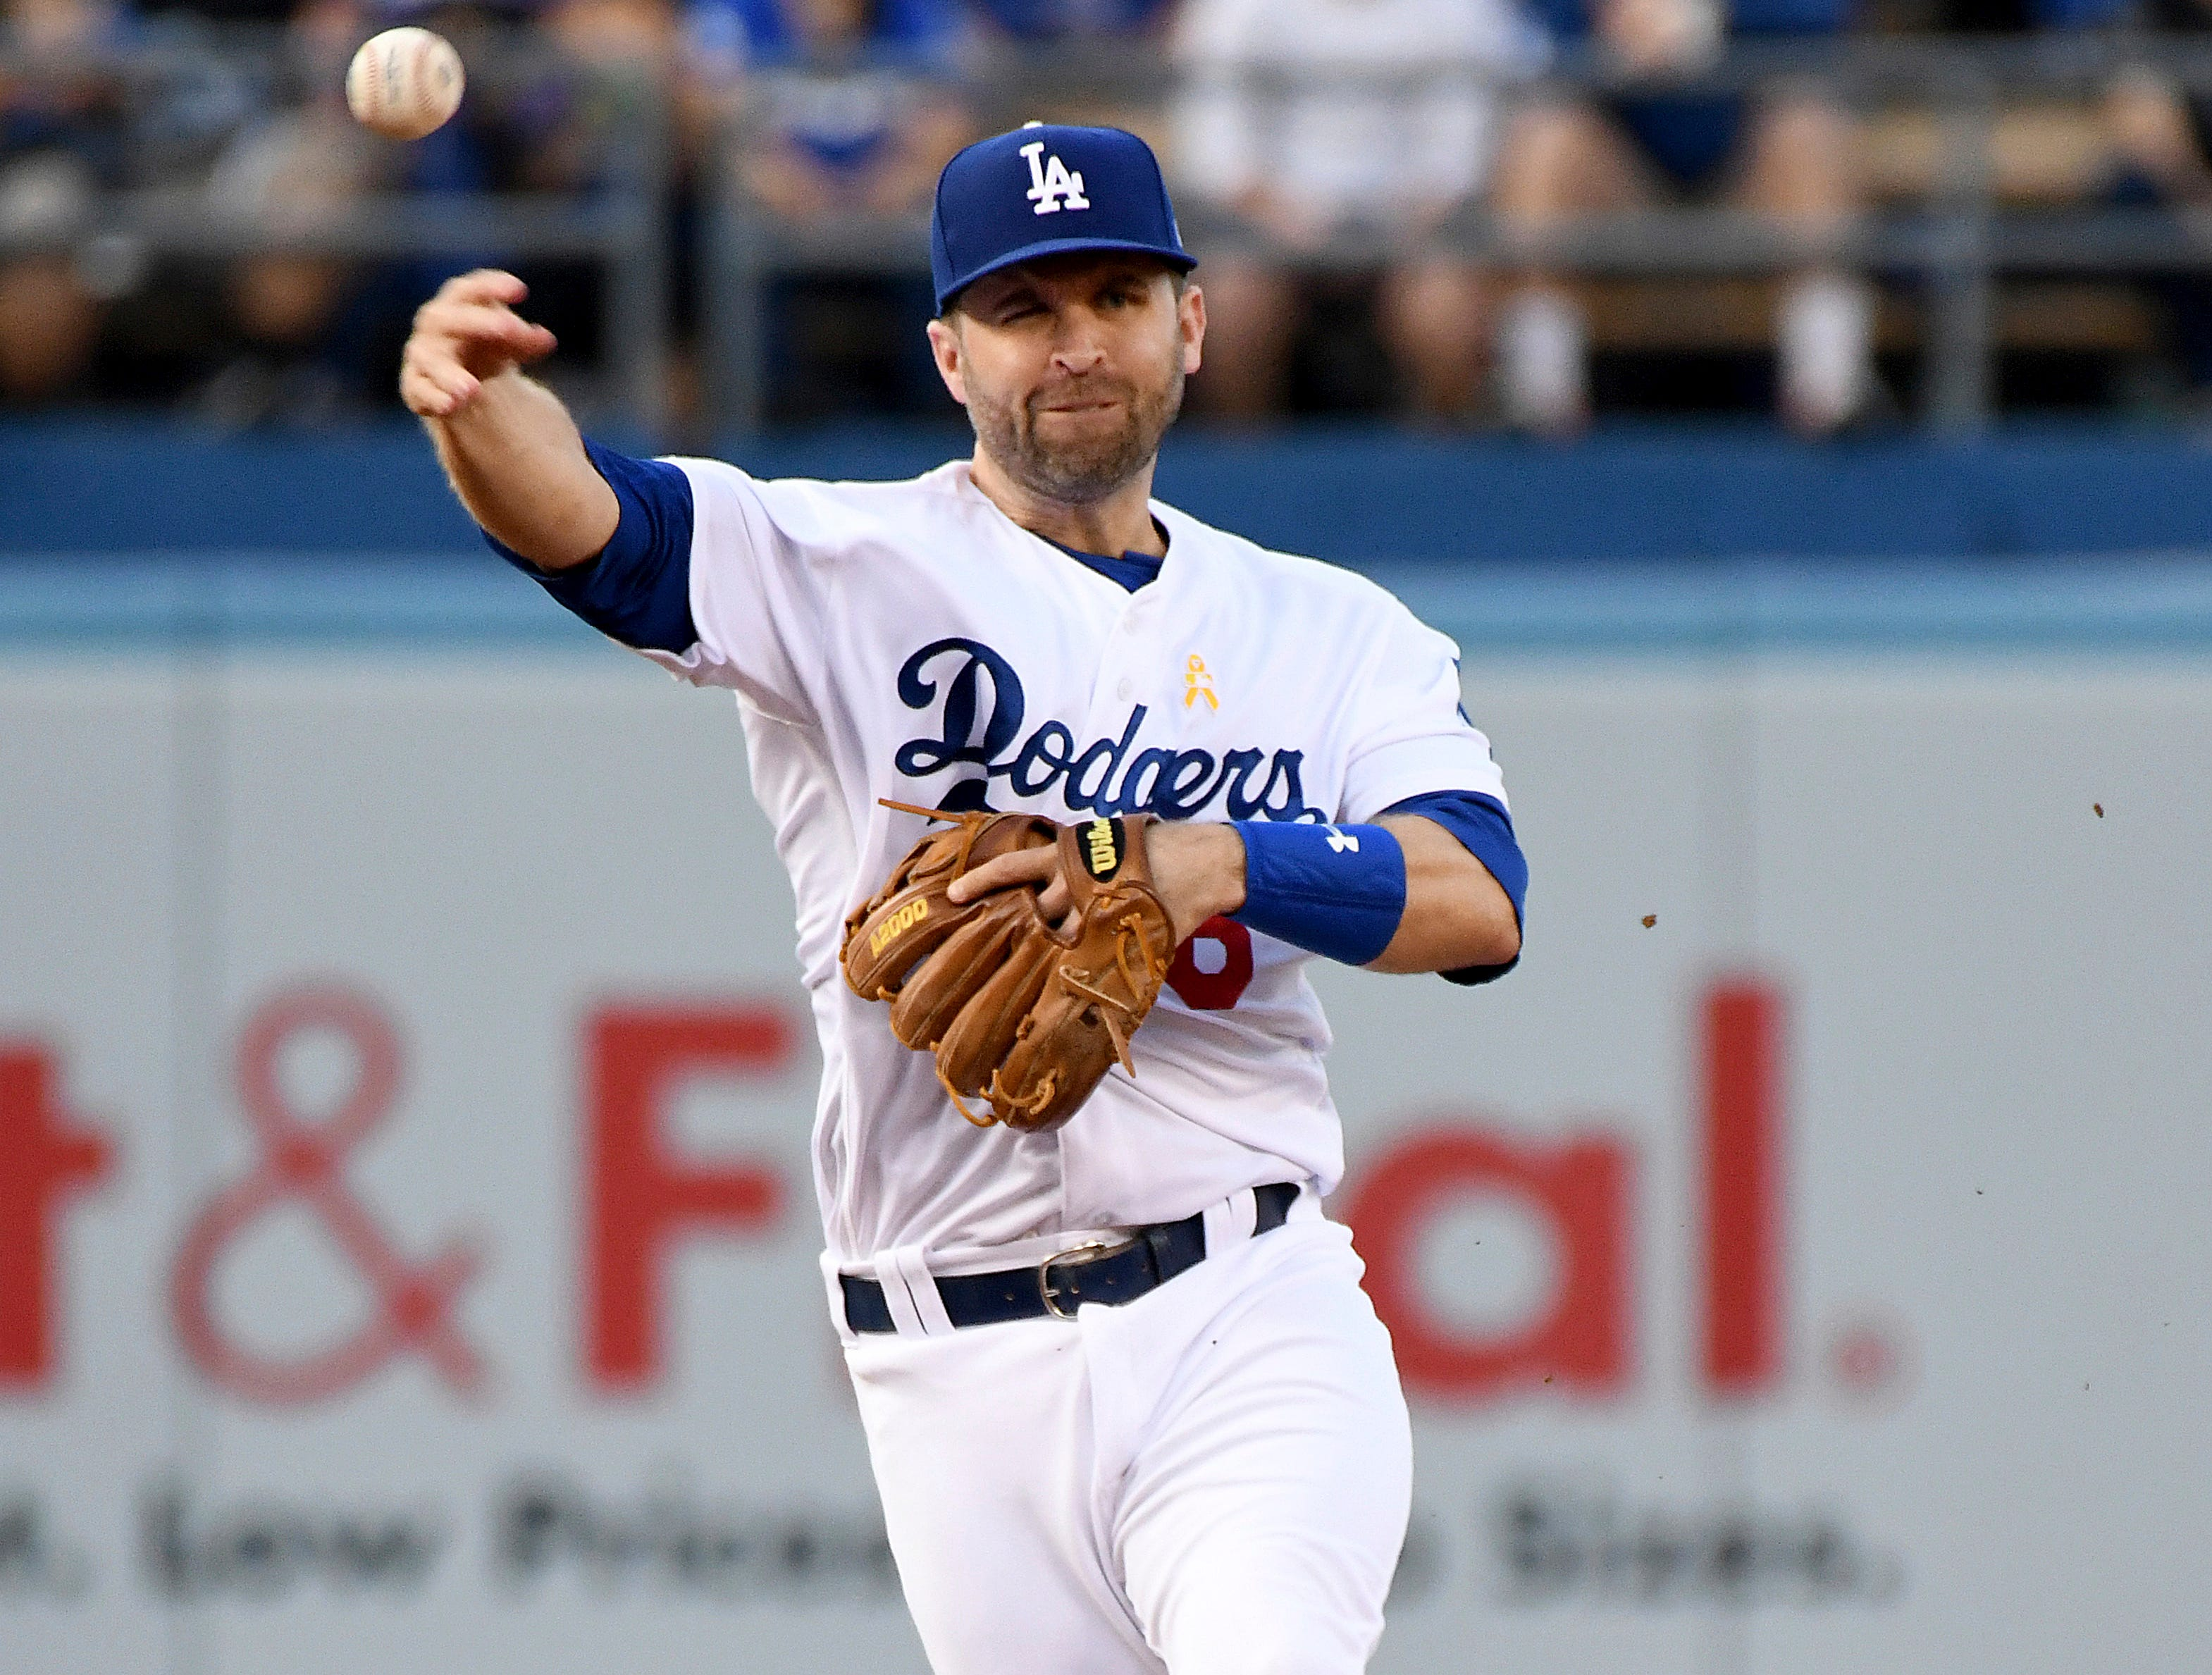 Los Angeles Dodgers second baseman Brian Dozier throws to first base after fielding a grounder by Arizona Diamondbacks' Paul Goldschmidt during the first inning of a baseball game, Saturday, Sept. 1, 2018, in Los Angeles.